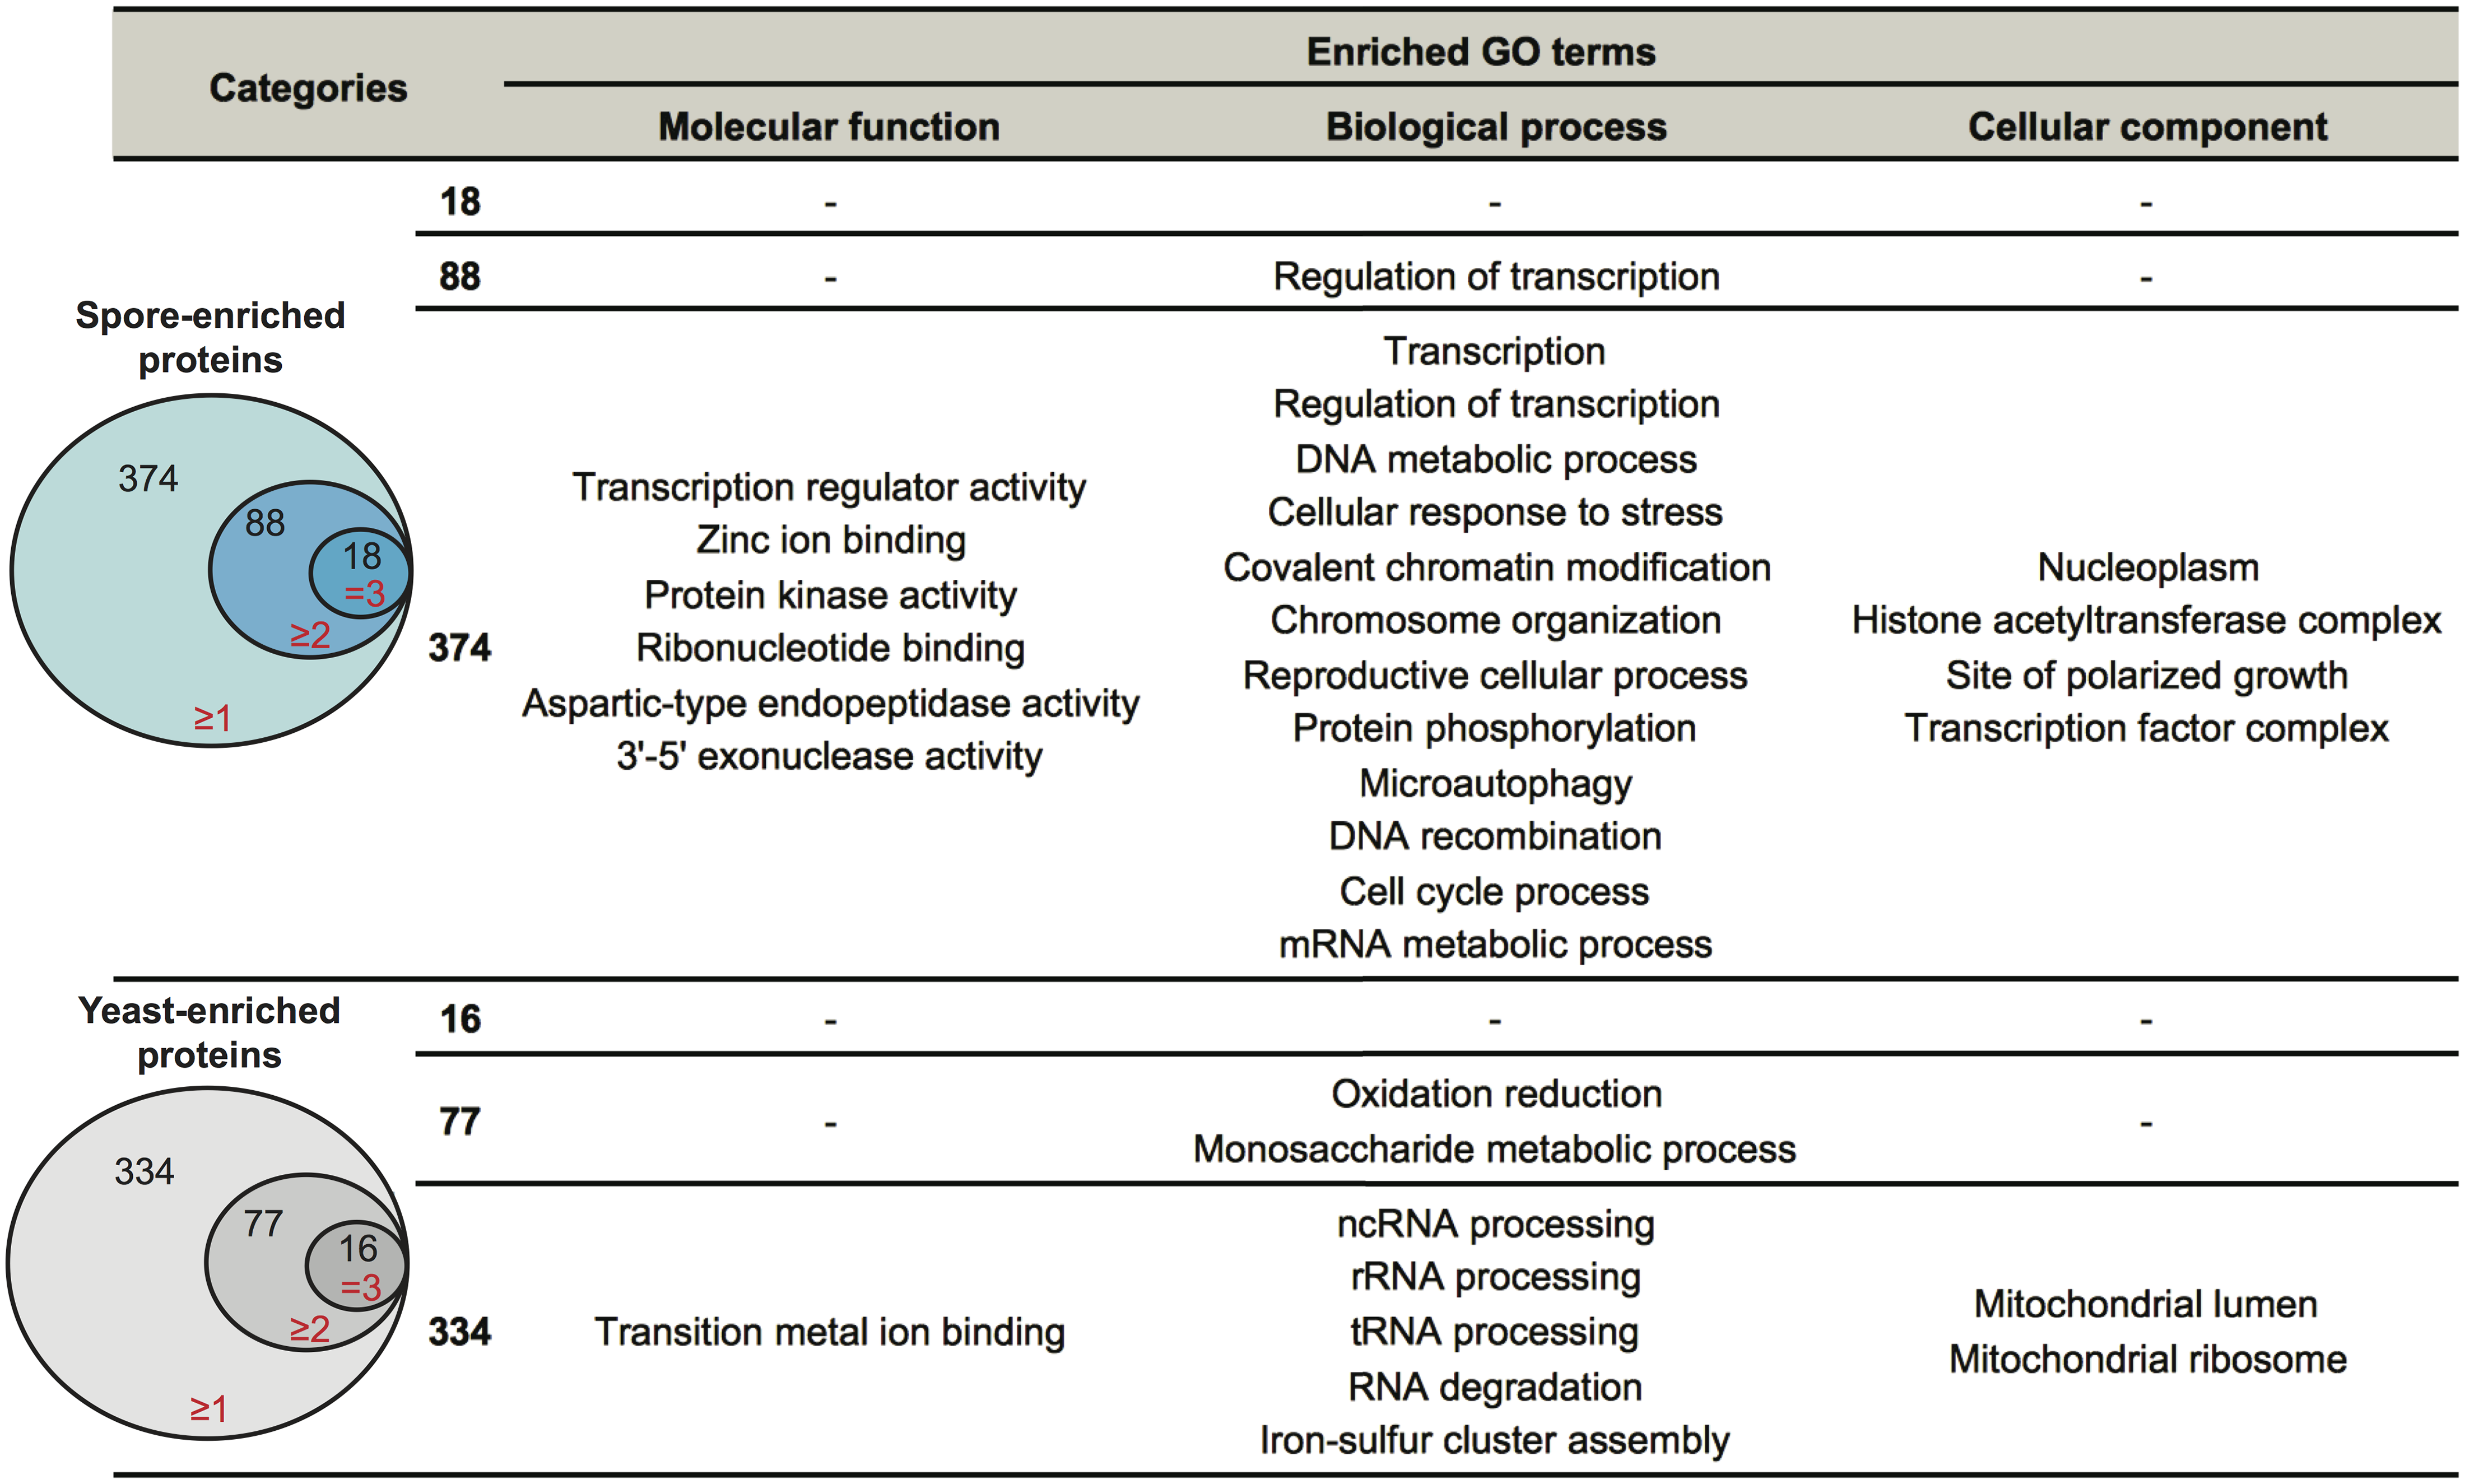 Enriched biological processes in spore-enriched or yeast-enriched proteins.